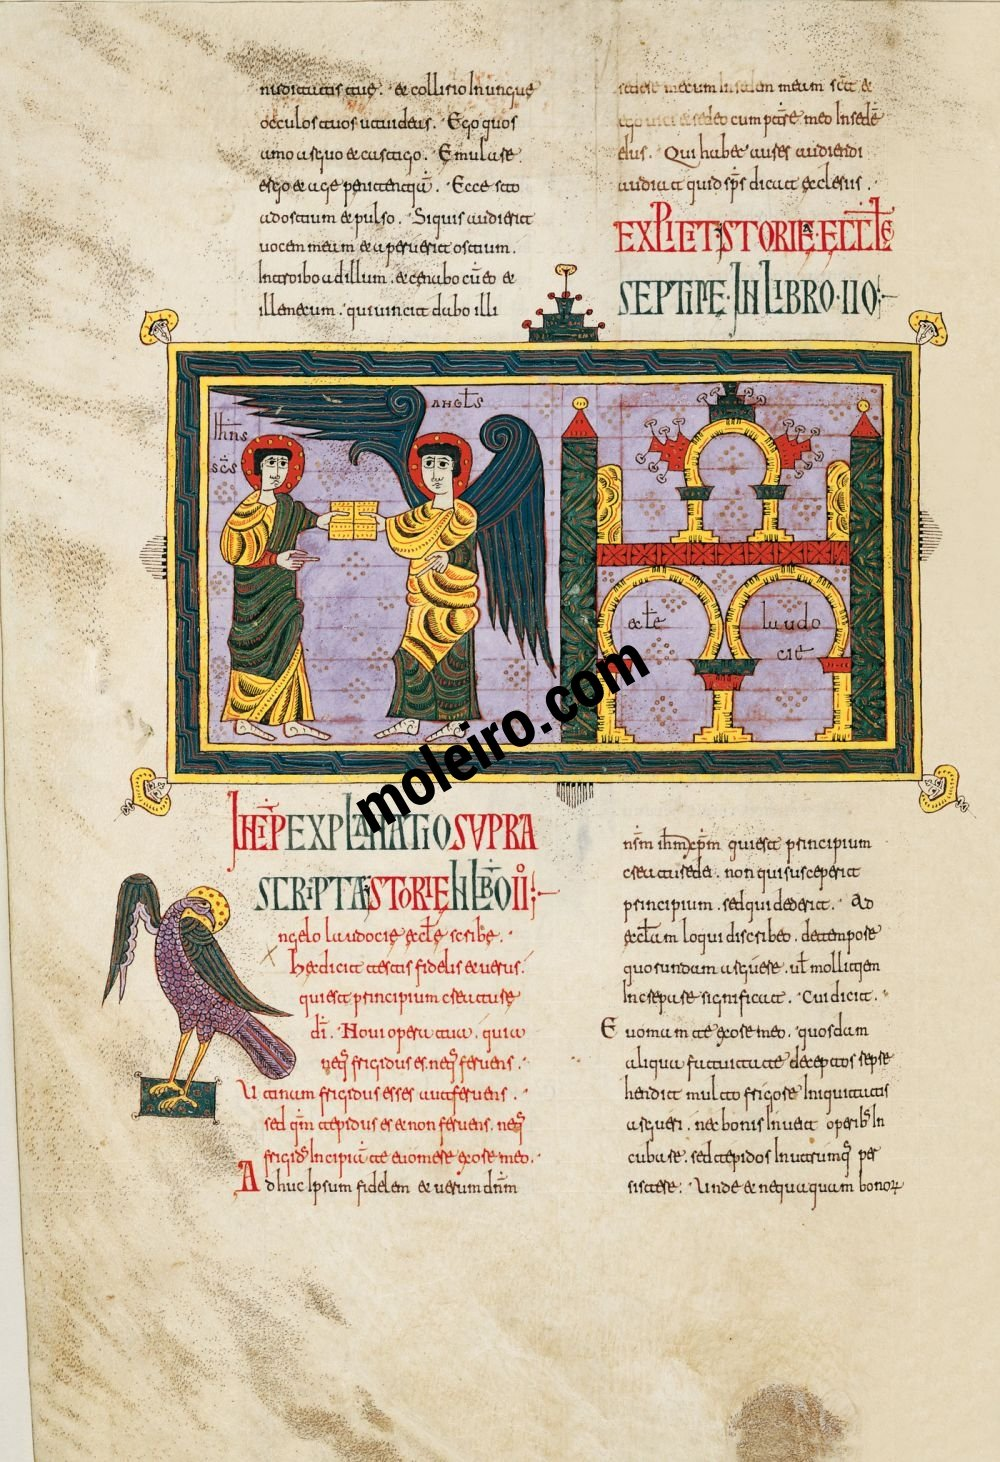 Silos Beatus f. 77v, The message to the Church of Loadicea